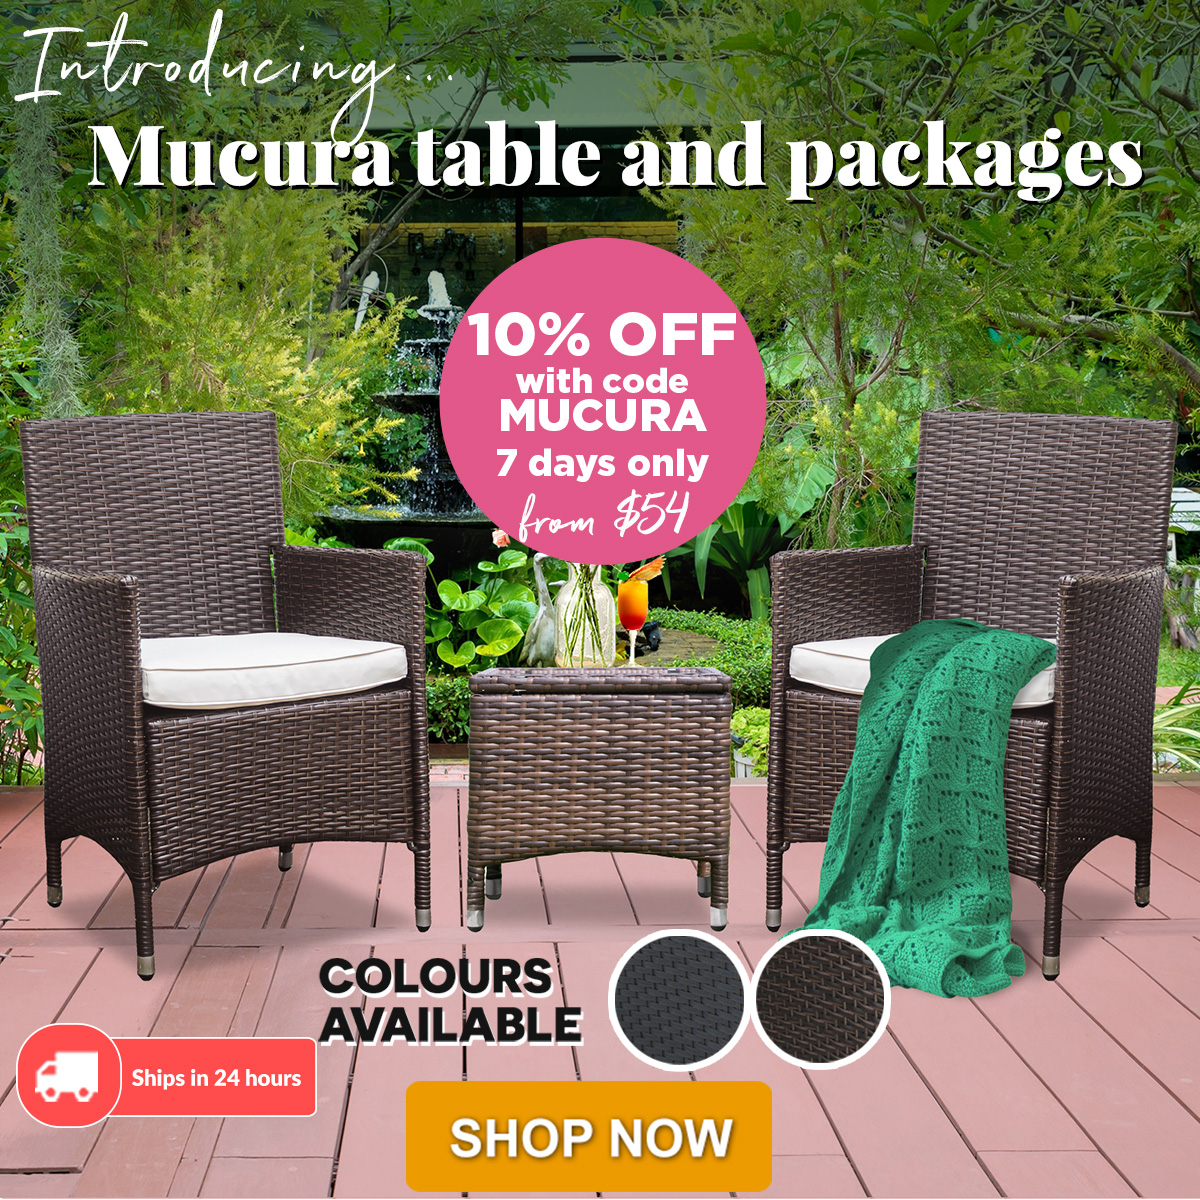 Mucura Wicker Outdoor Side Table - Deluxe Products: 👀 Launching New Outdoor Table And Sets |10% OFF